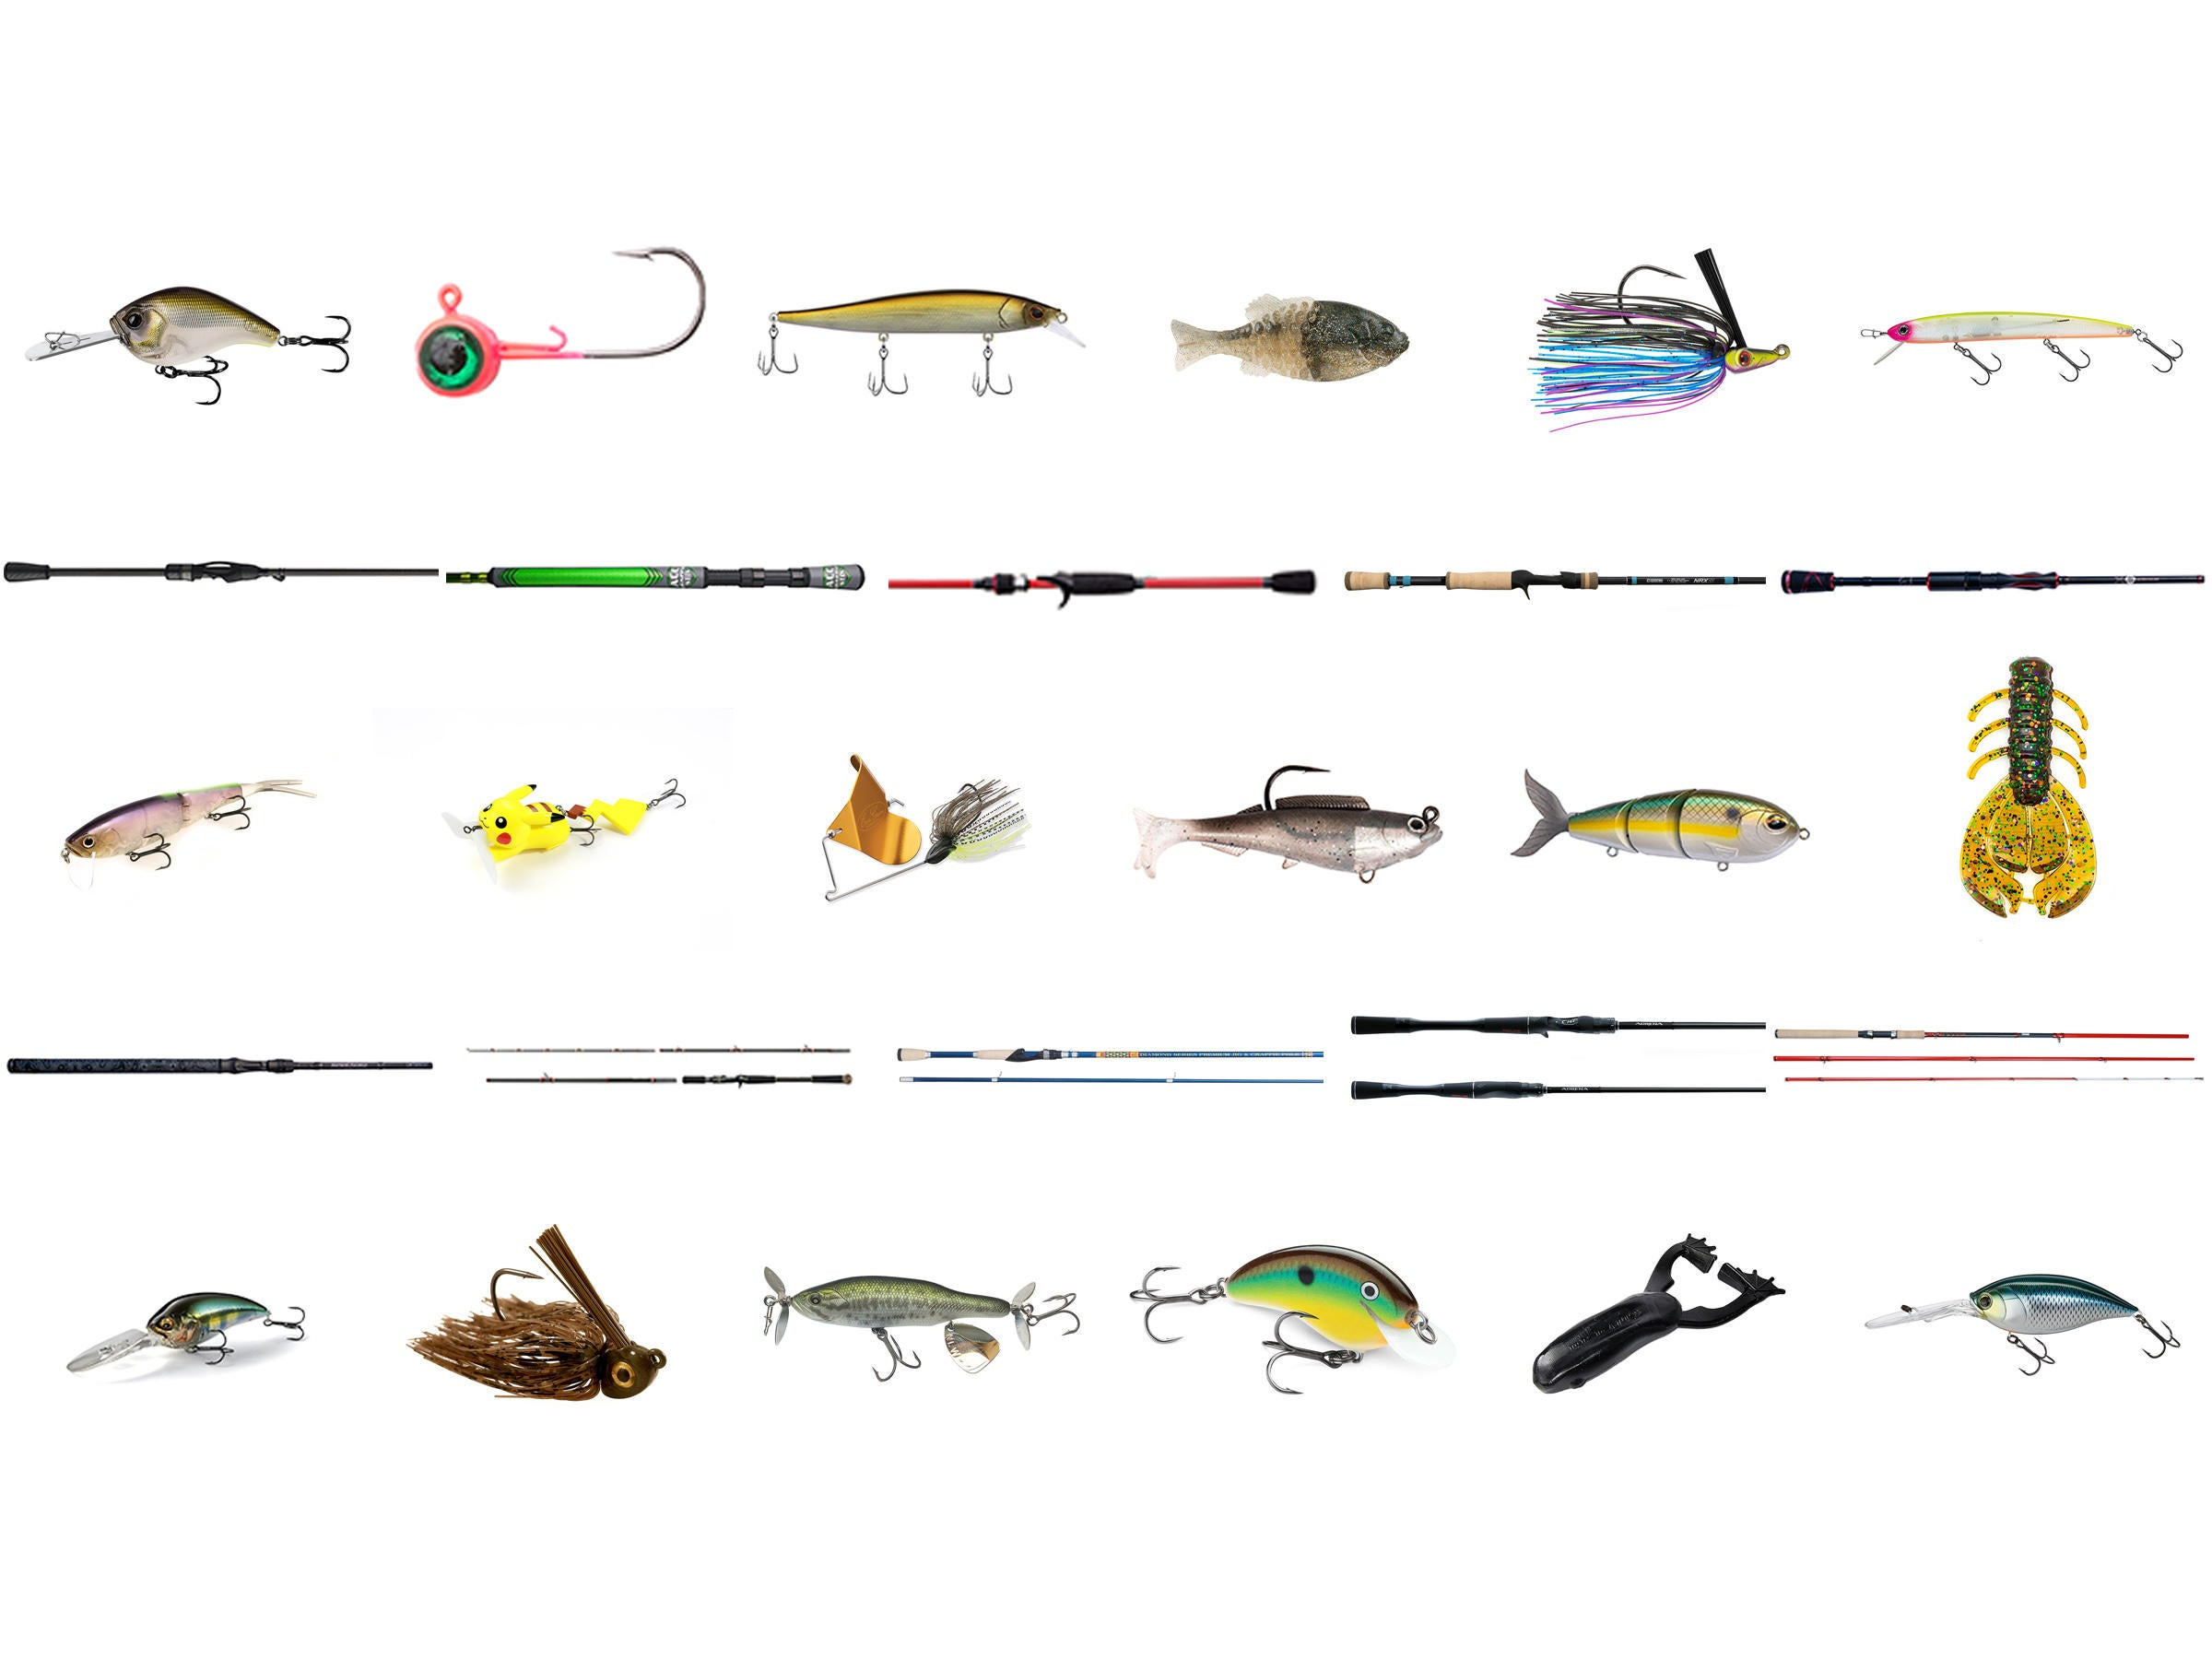 New Fishing Tackle for 2022 | ICAST 2021